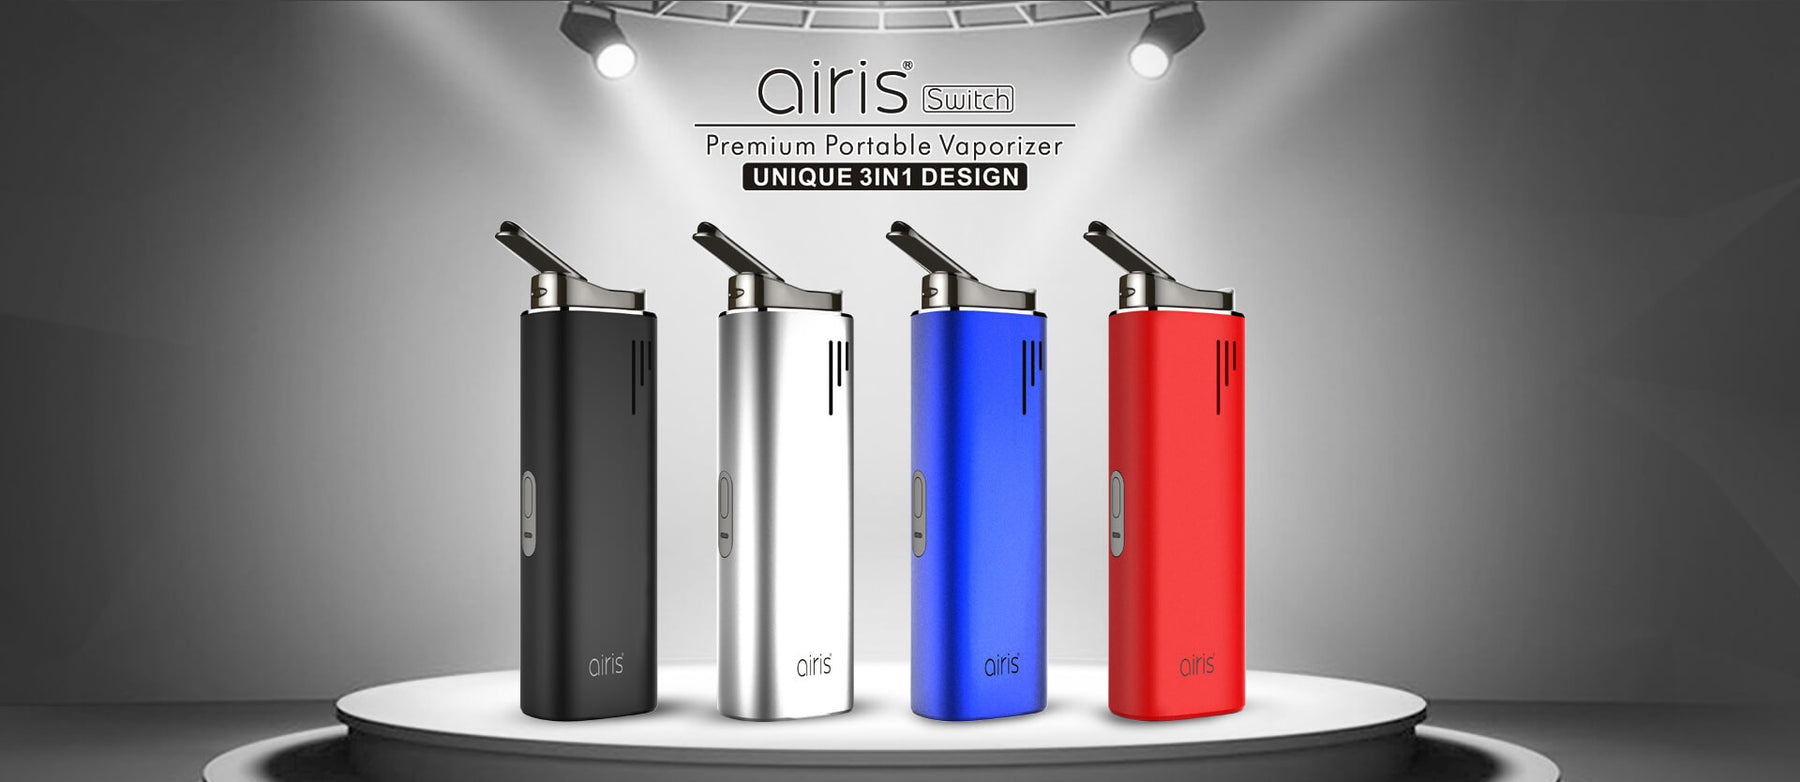 Airis switch